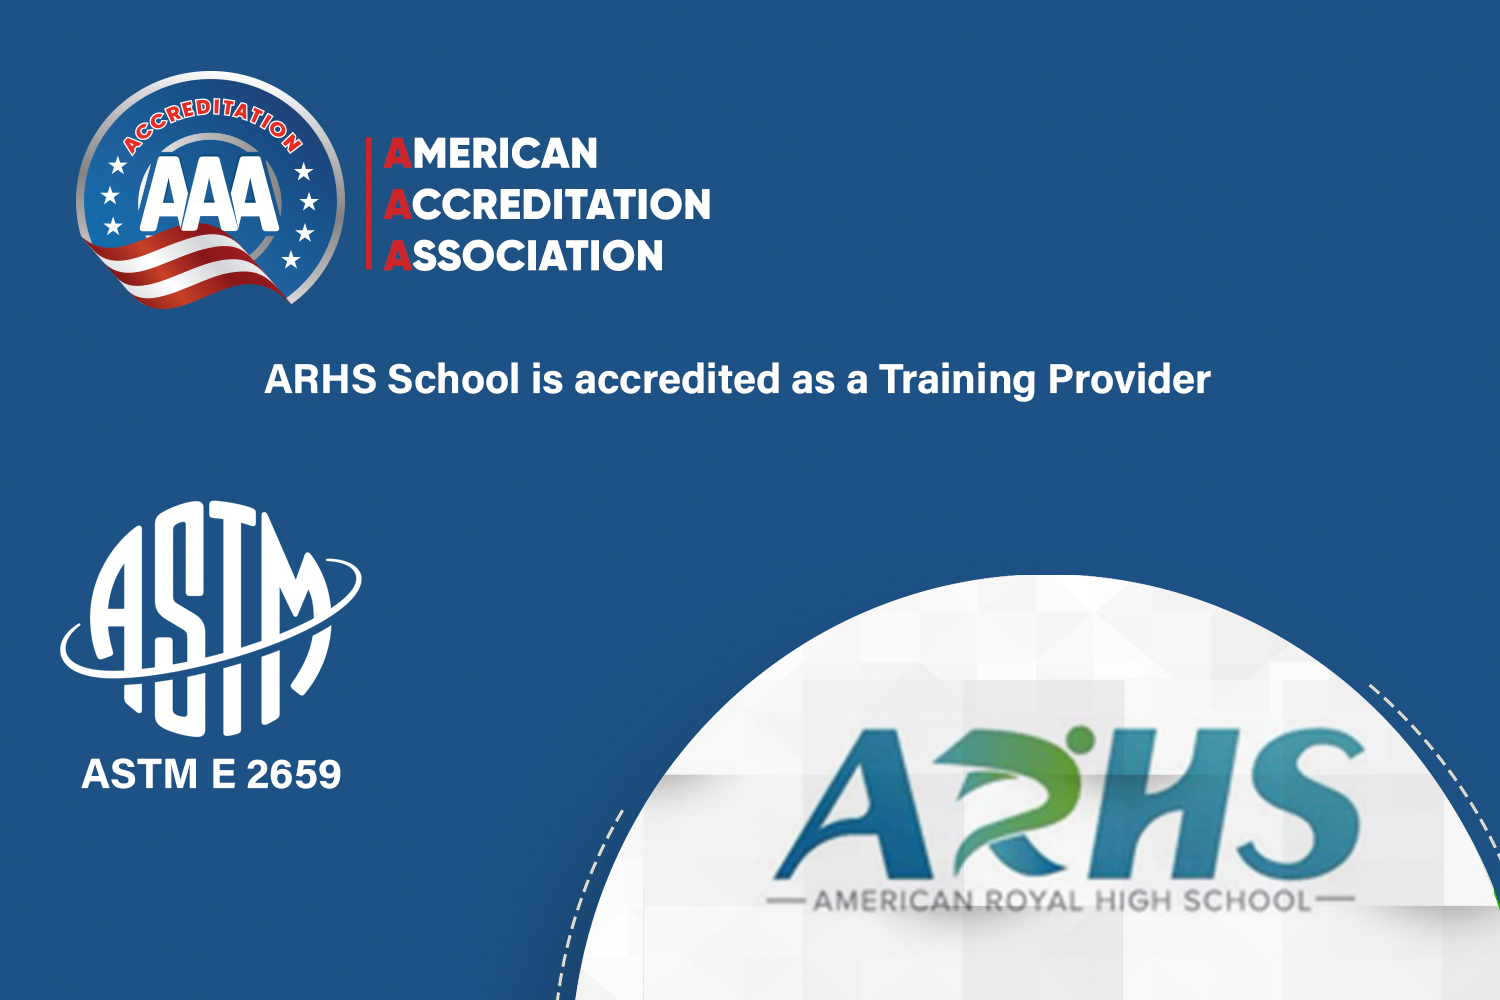 ARHS School is accredited as a Training Provider